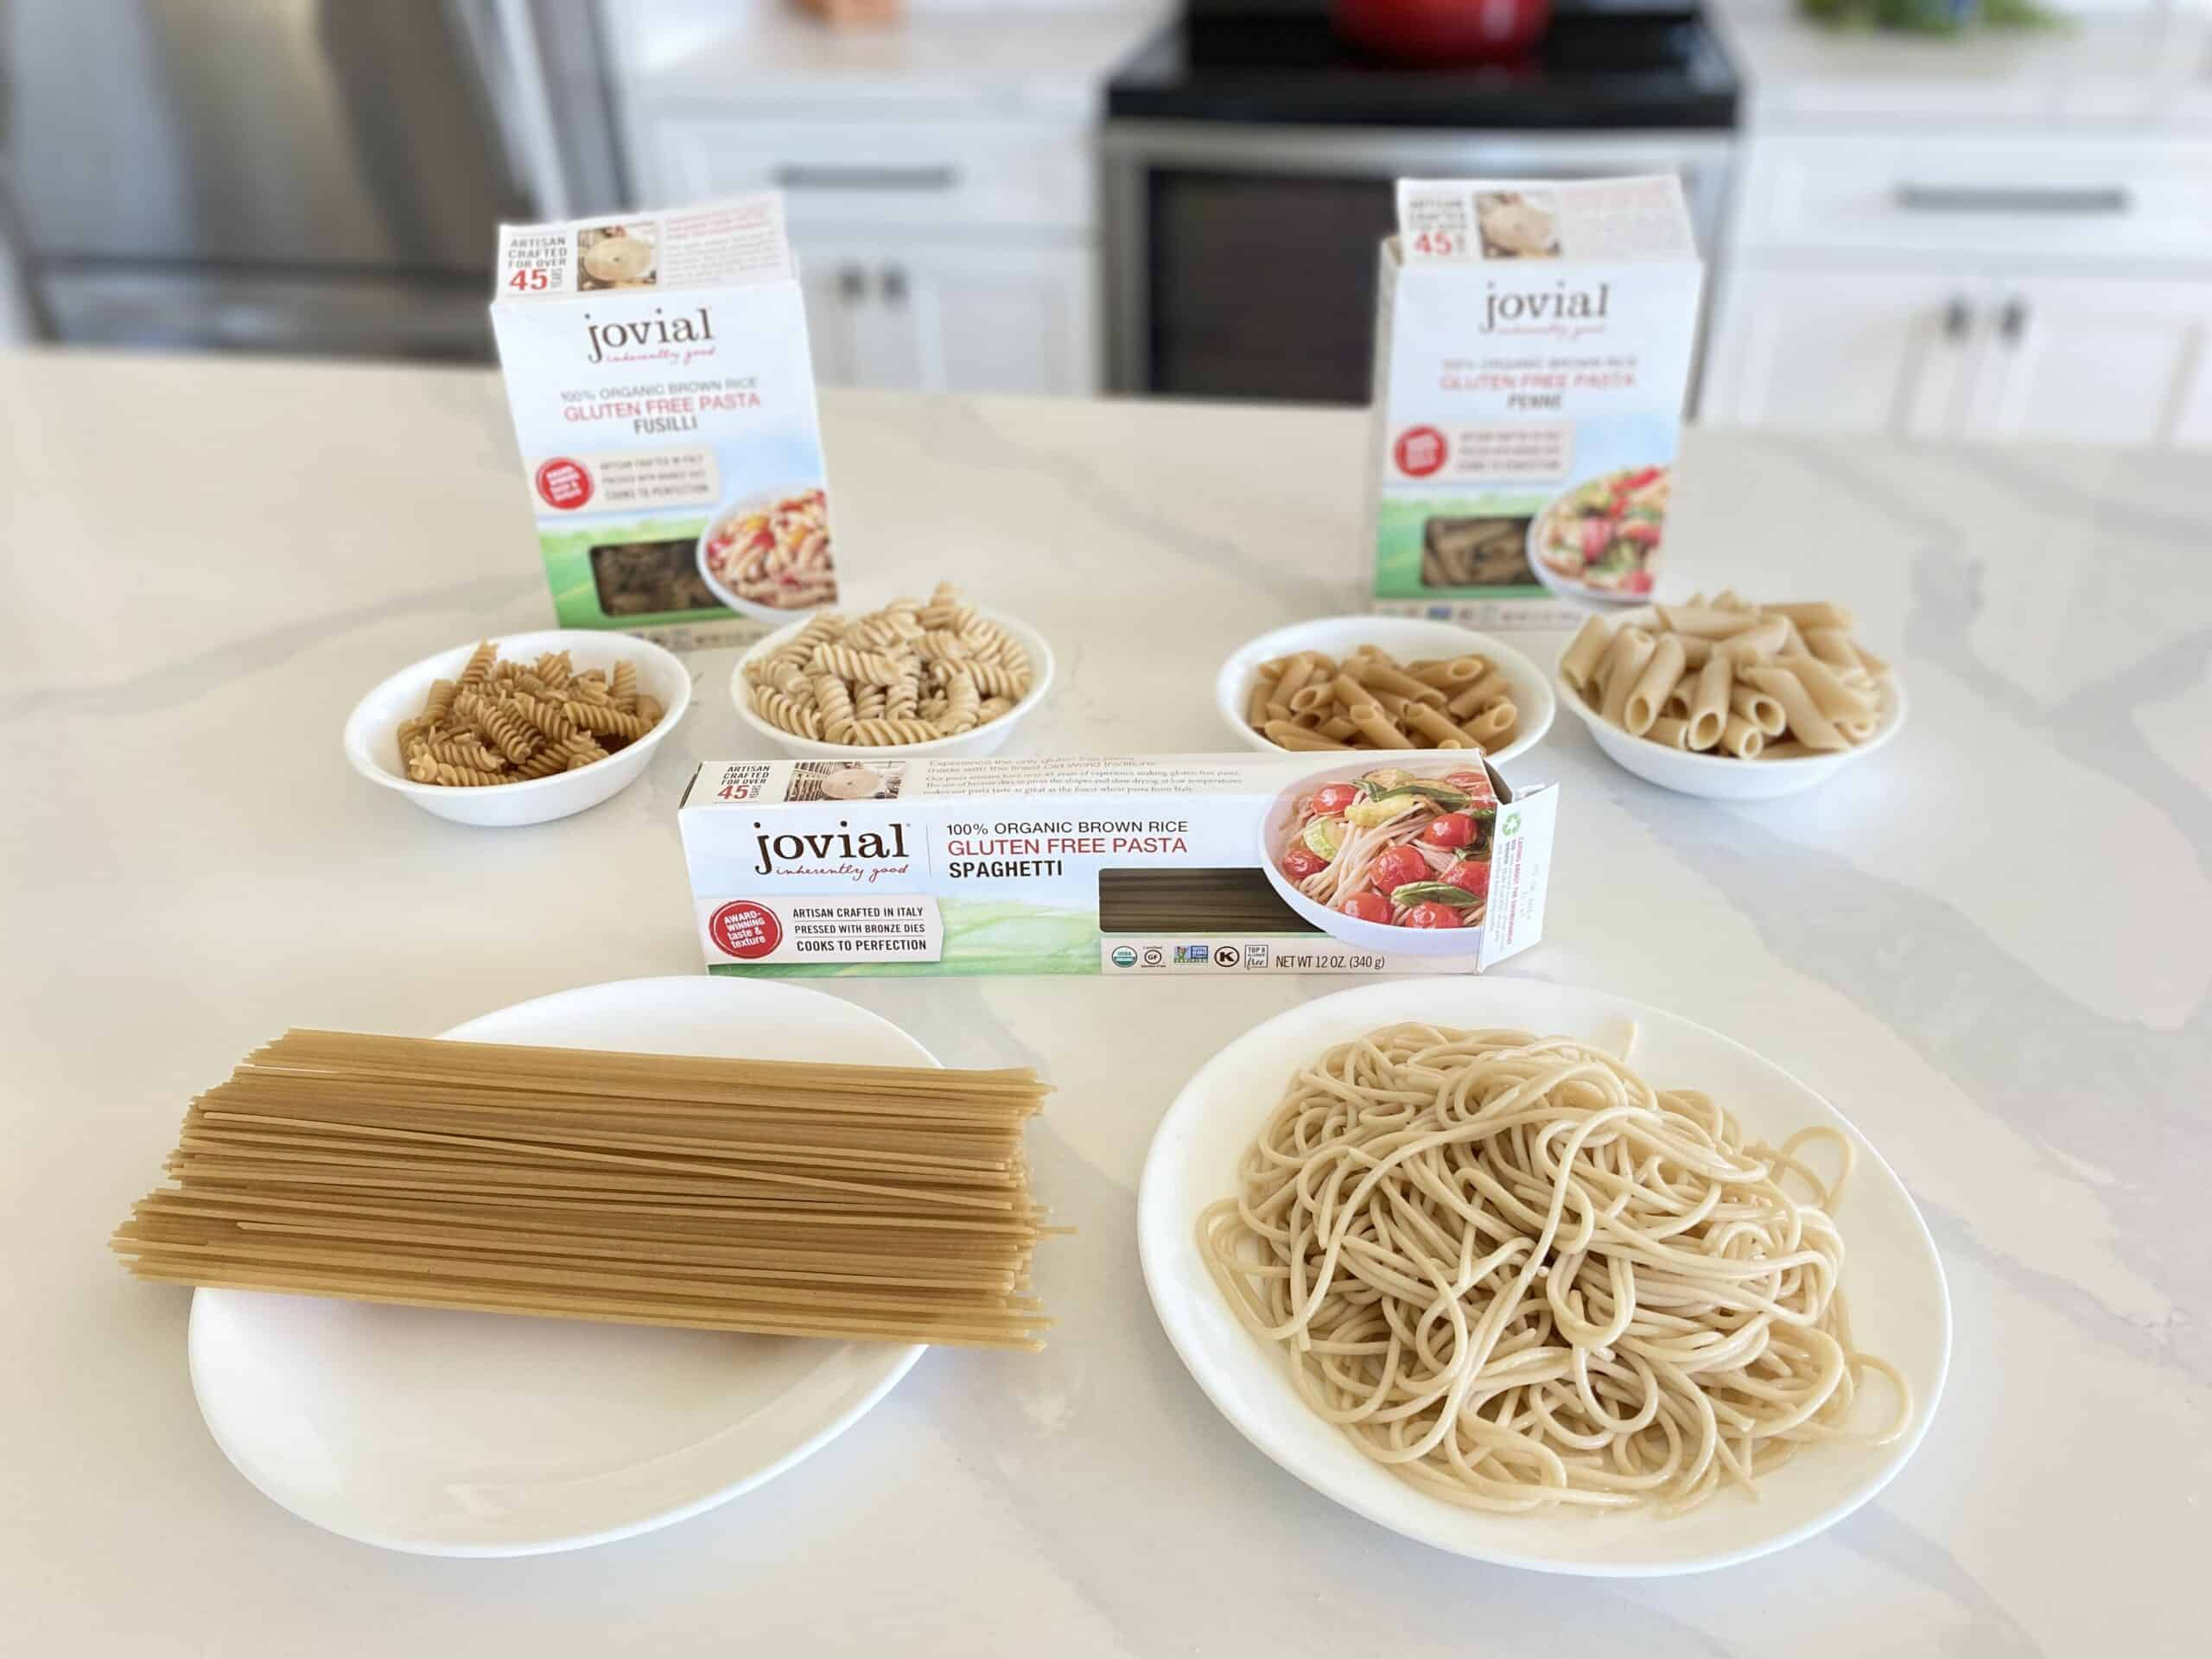 Jovial Gluten Free Pasta - Group Comparison